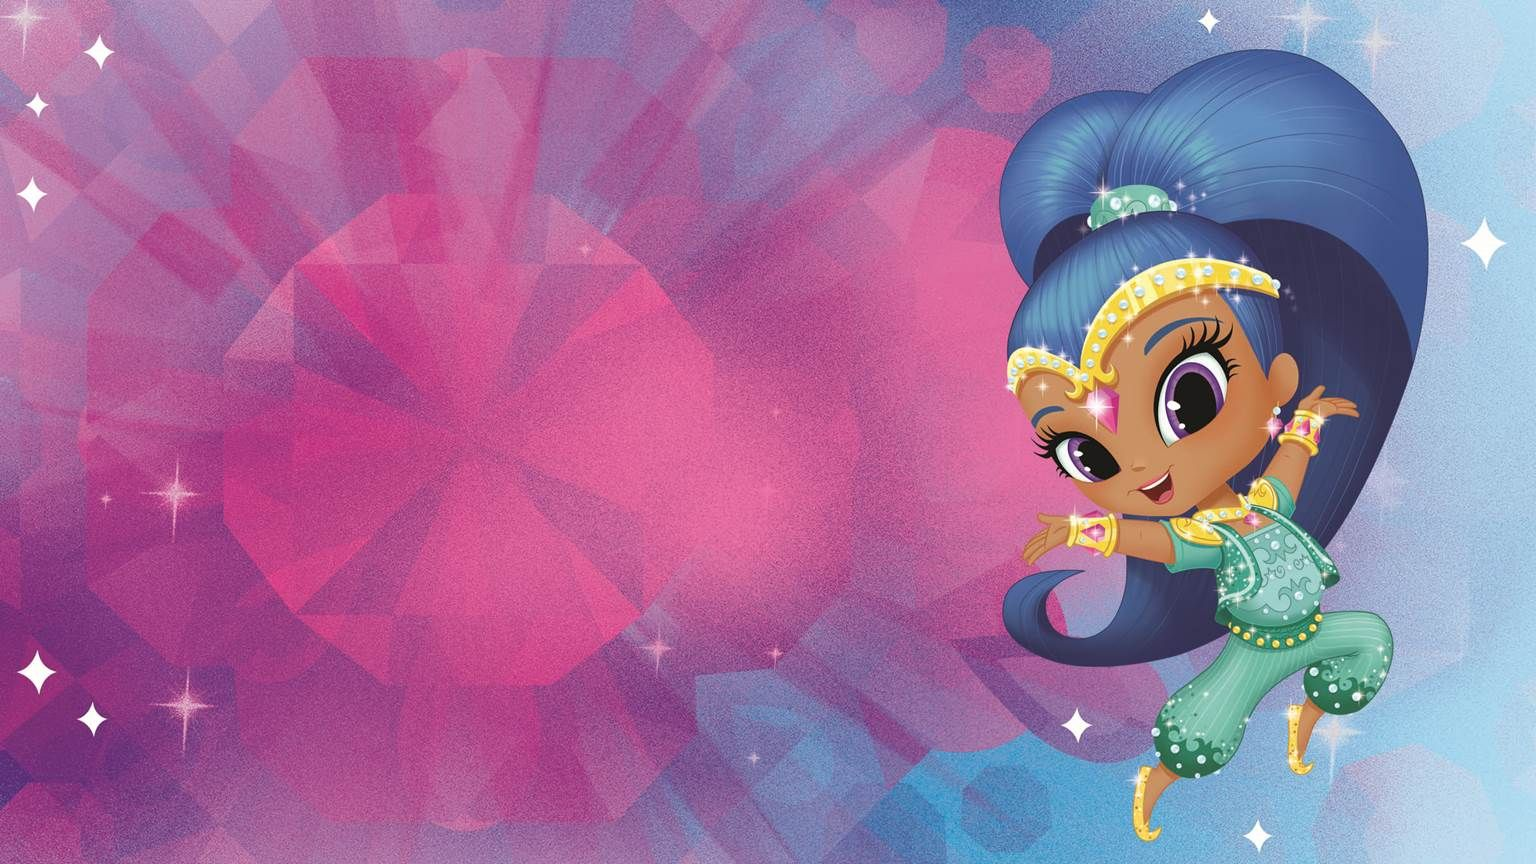 Its time to dazzle with this shine wallpaper from shimmer & shine